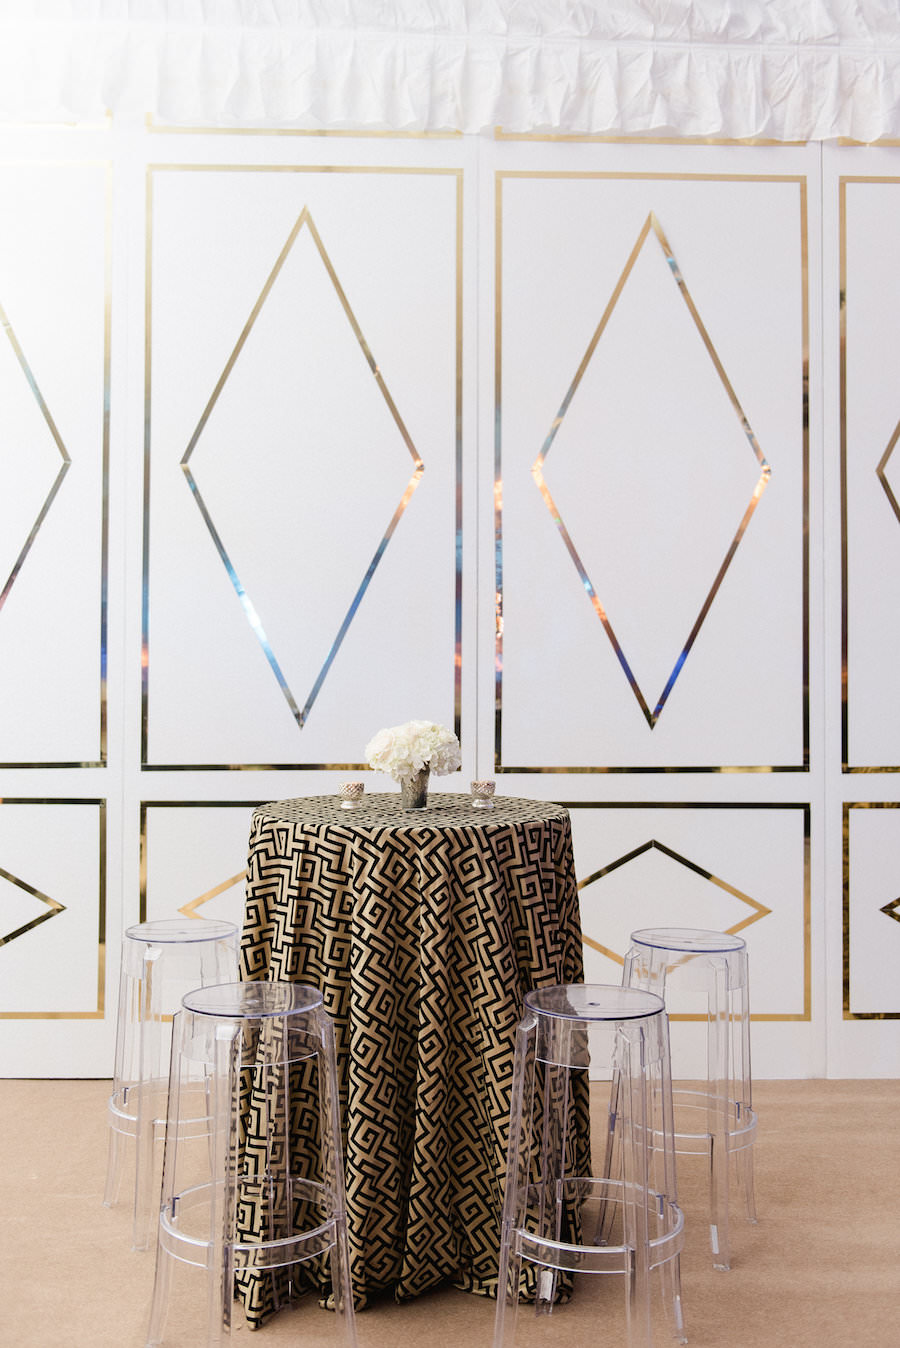 Great Gatsby 1920s Inspired Wedding Reception Inspiration | Gold Sequined Linens with White and Gold Walls and Ghost Chairs